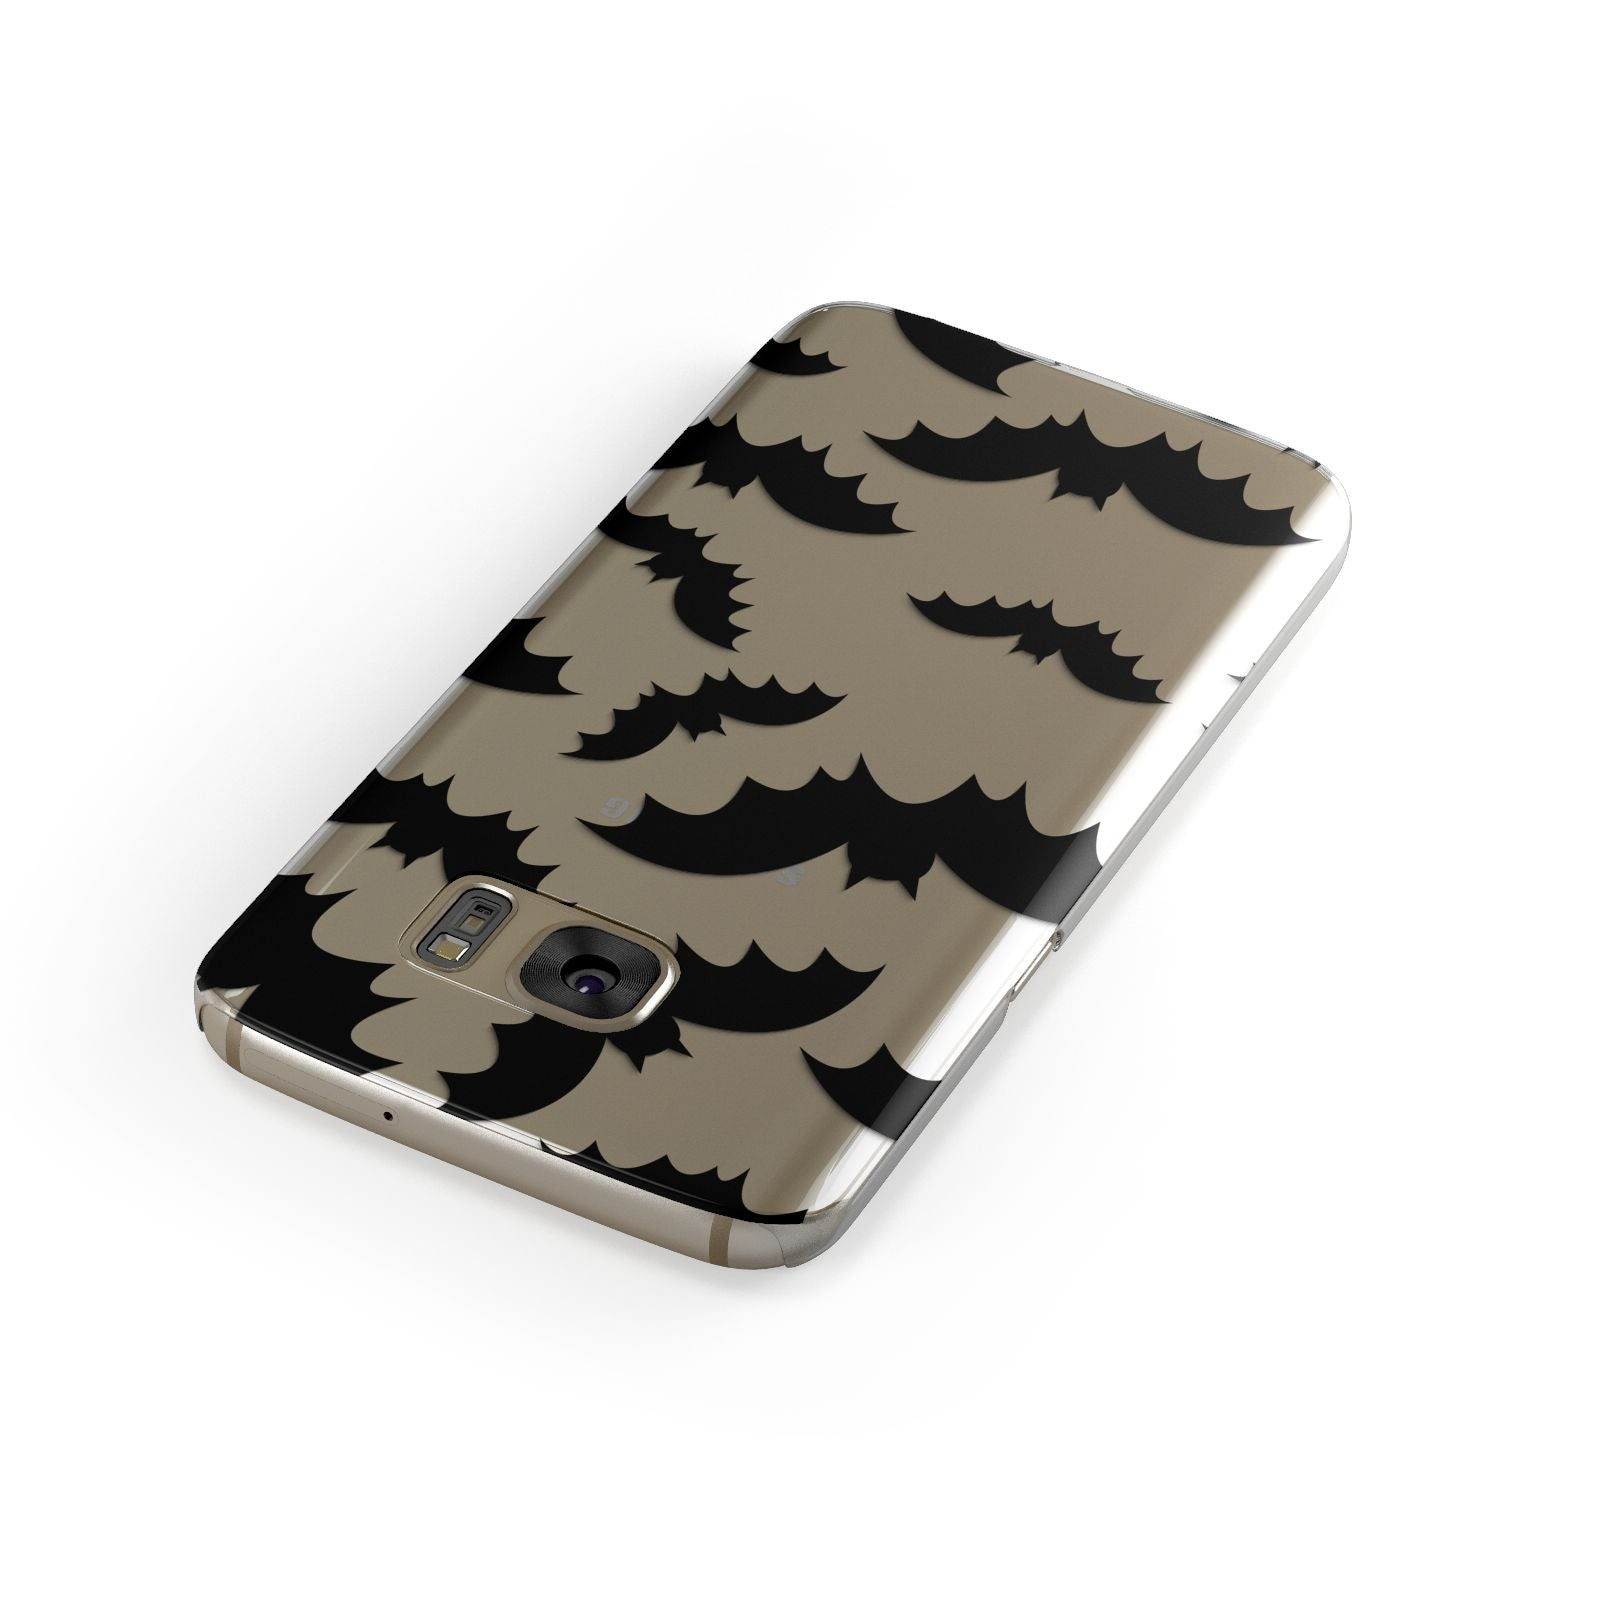 Bat Halloween Print Samsung Galaxy Case Front Close Up